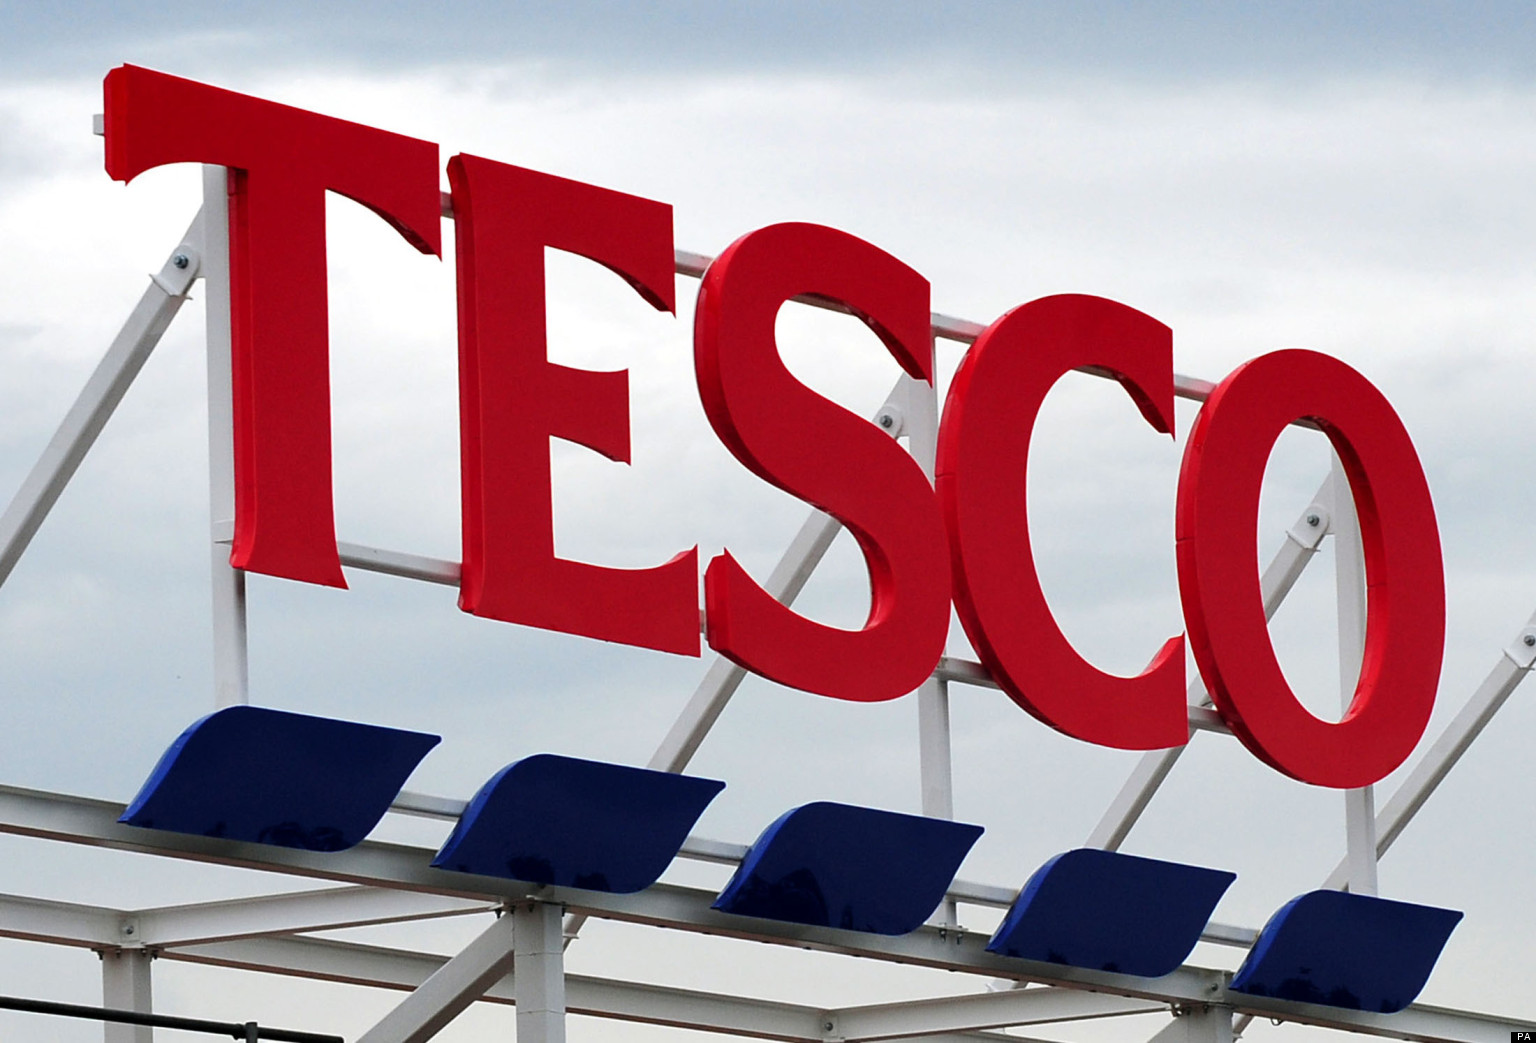 is tesco coming to pakistan